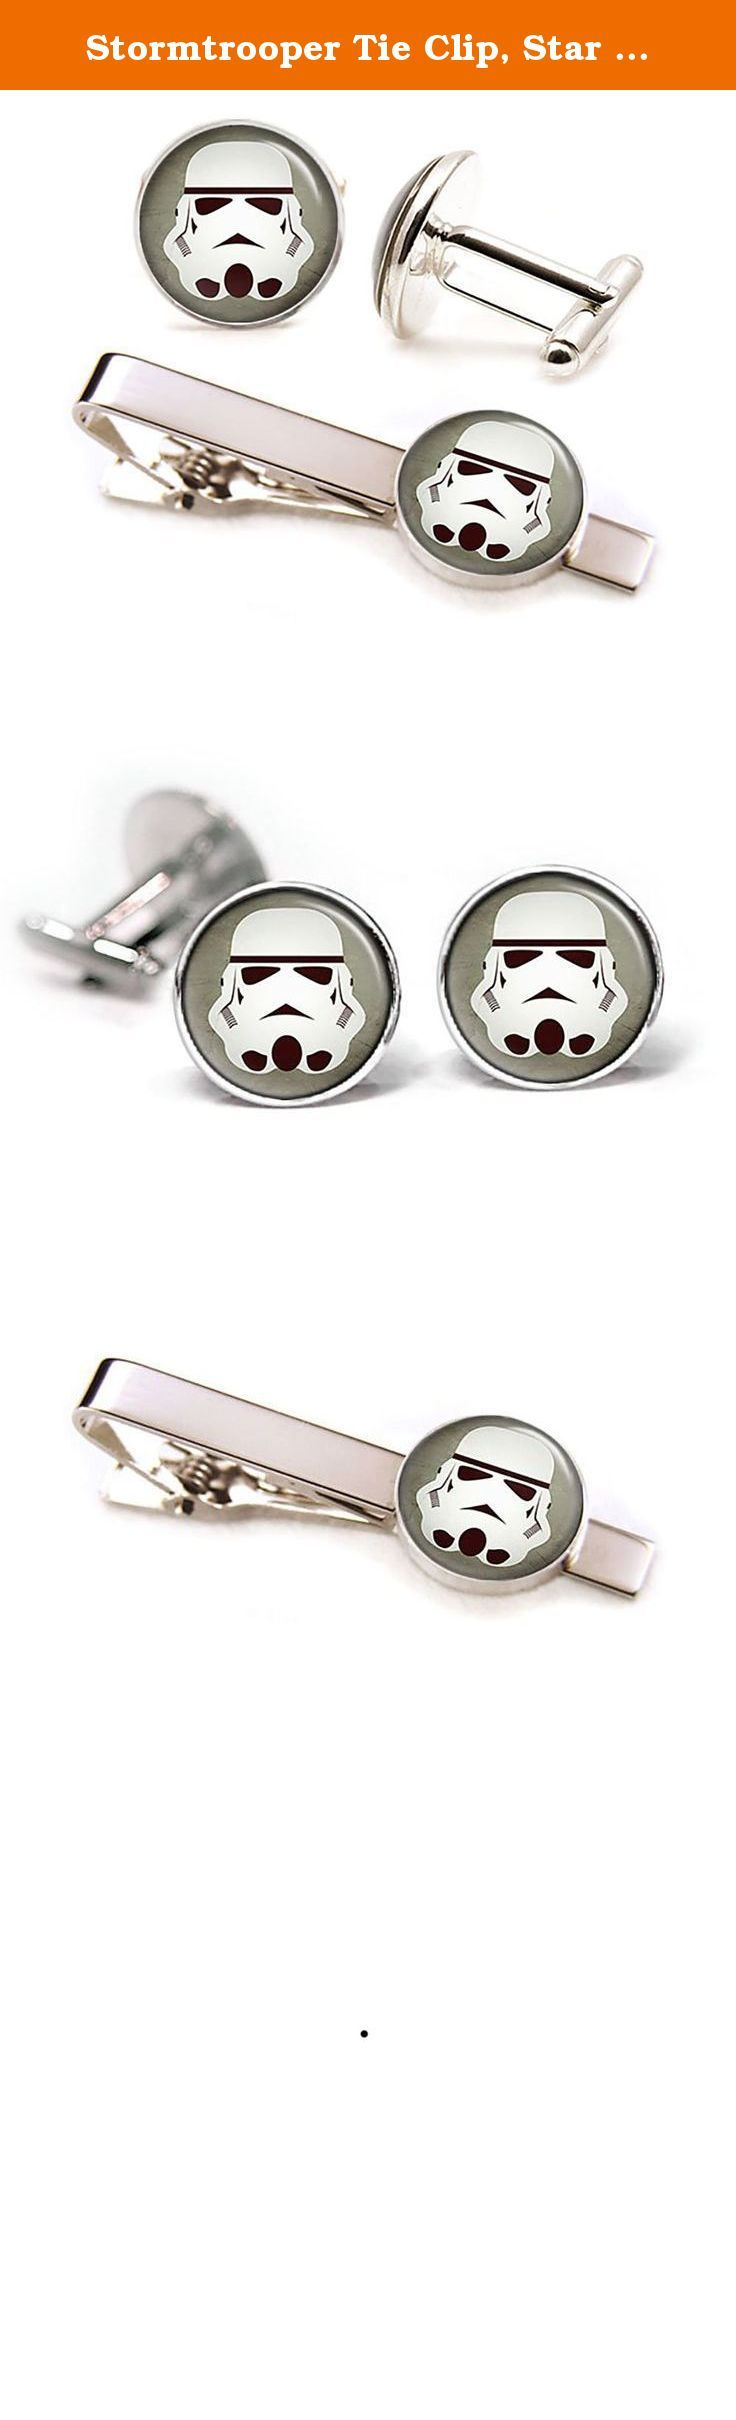 """Stormtrooper Tie Clip, Star Wars Cufflinks, Stormtroopers Jewelry, Jedi Cuff Links, Darth Vadar, Death Star, Star Wars Wedding Party Gifts, Groomsmen Gift. -10% Off- purchases of two or more items from my amazon shop. For more cufflinks and tie clips check out my other listings by clicking the """"SharedImagination"""" link at the top of the listing above the product title. These cufflinks and tie clip feature a high quality image underneath glass. The glass gives the image a great shine and..."""